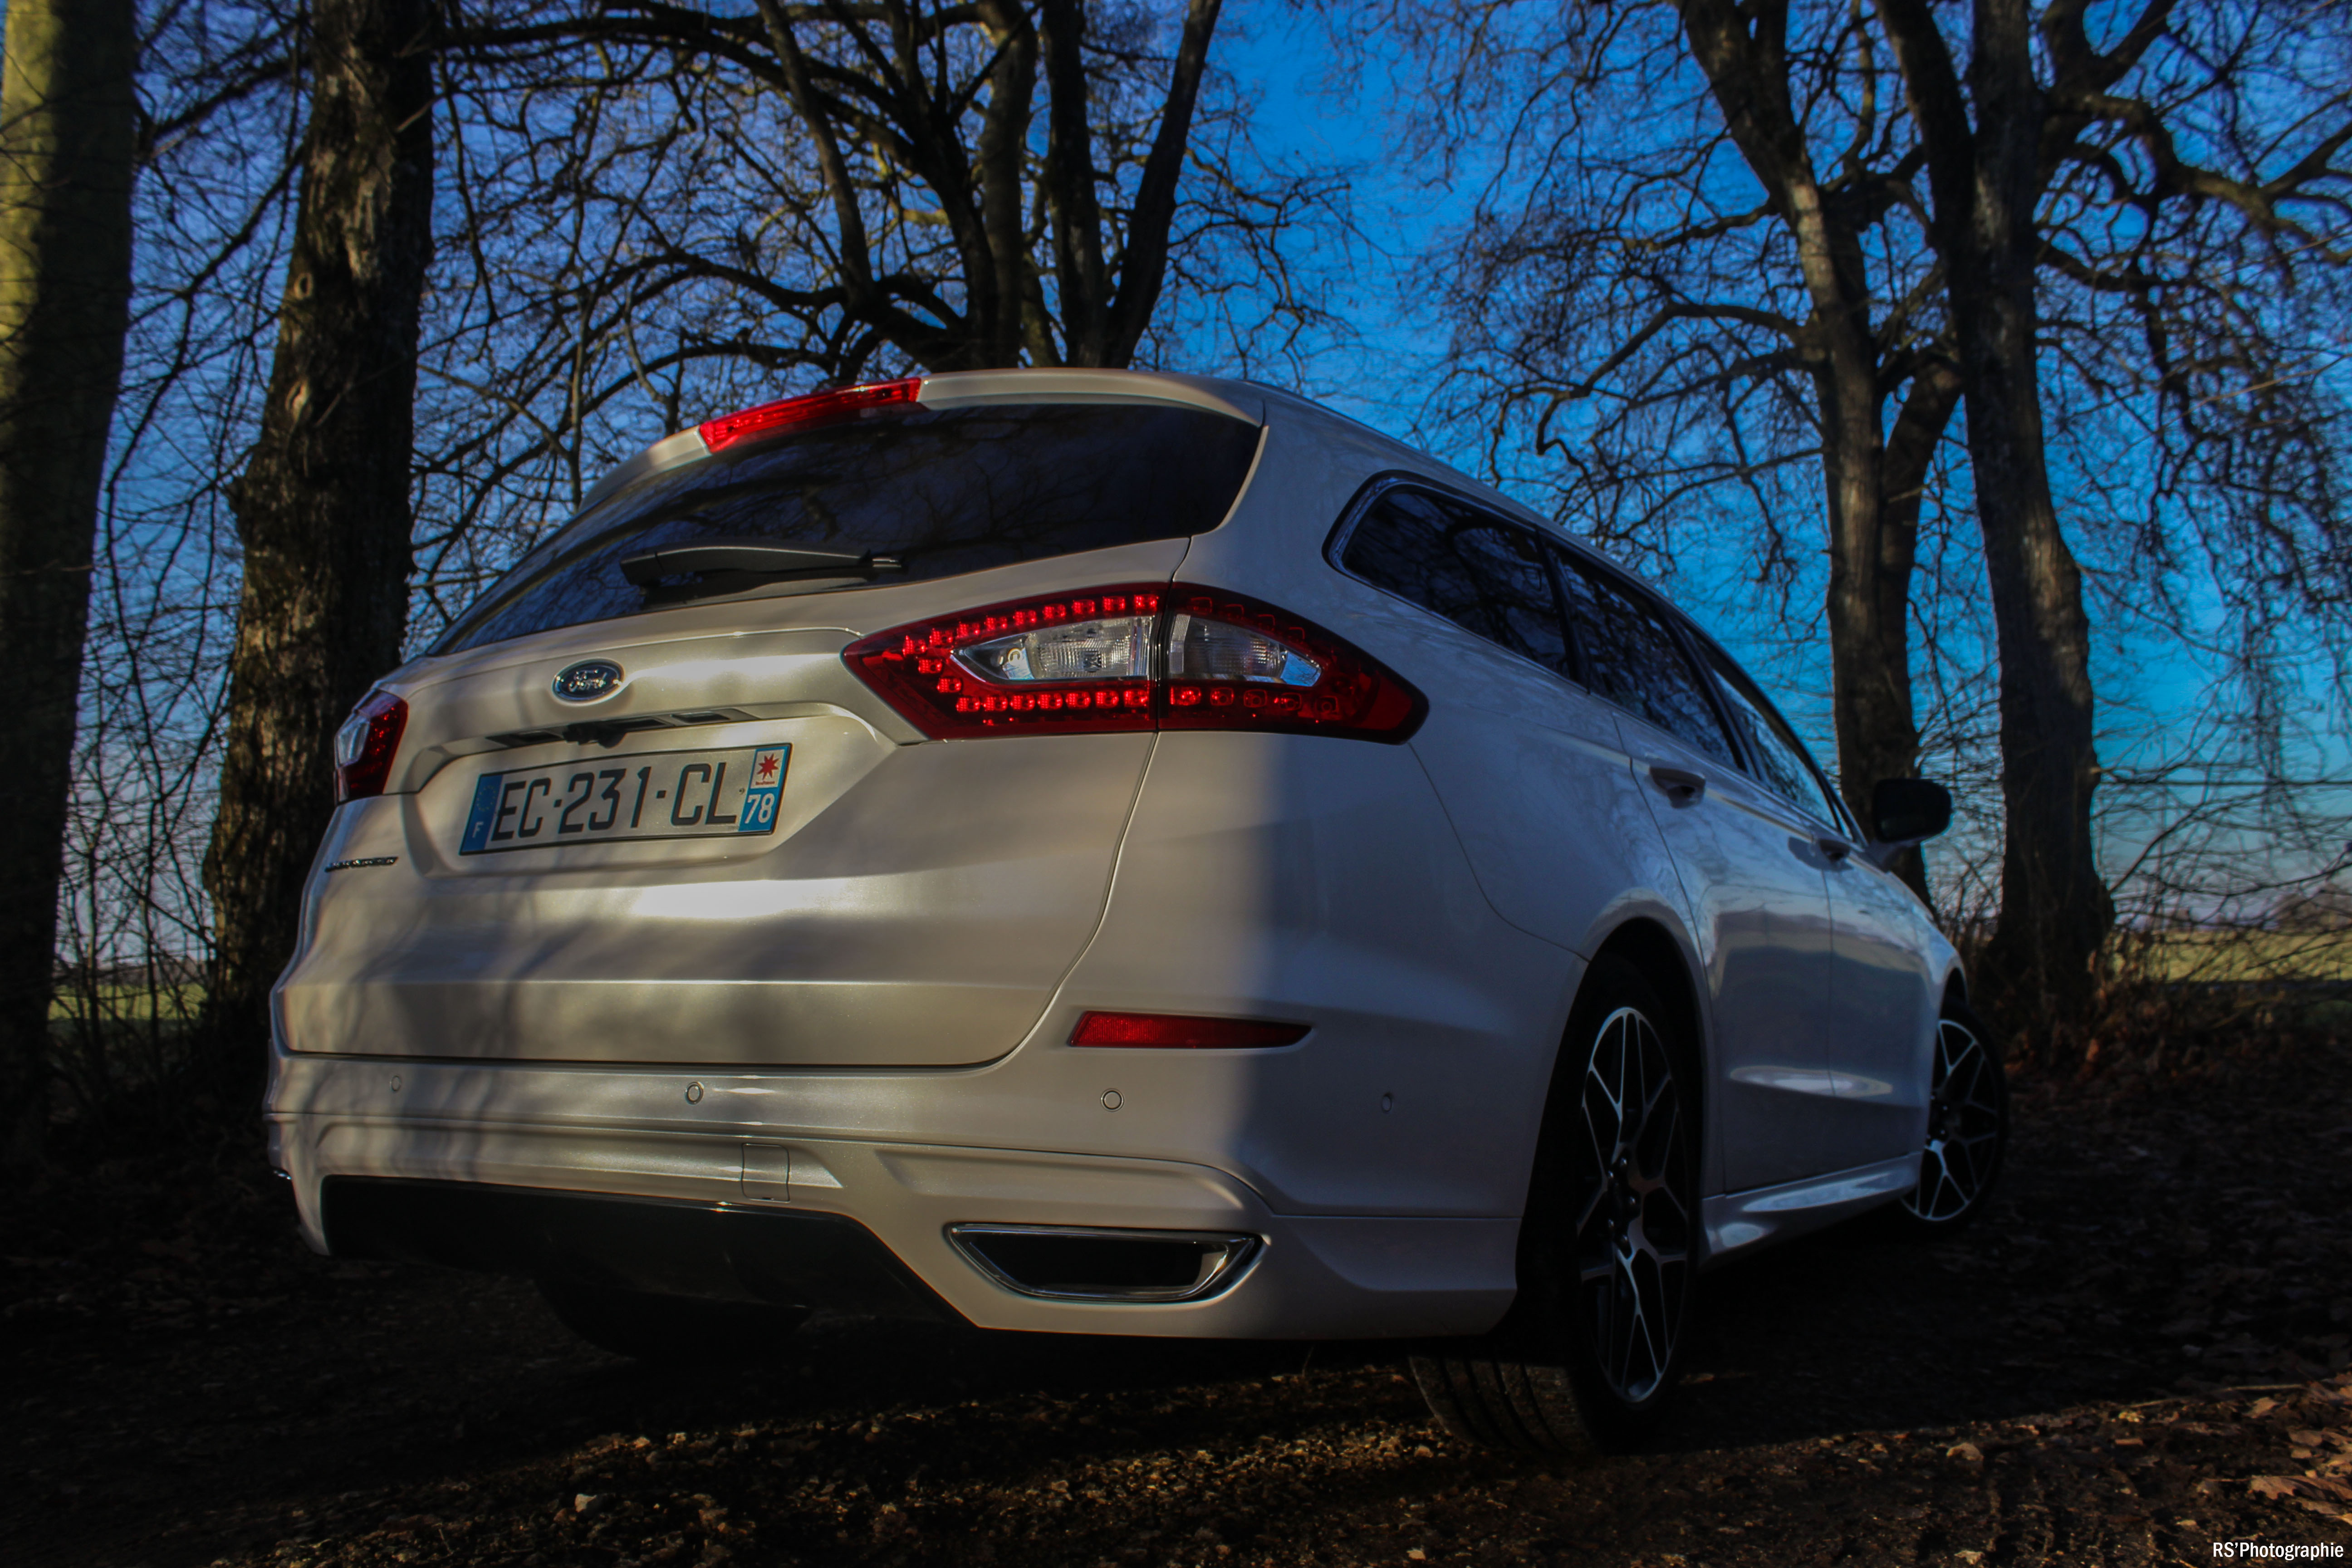 FordMondeoSW7-ford-mondeo-sw-180-arriere-rear-arnaud-demasier-rsphotographie